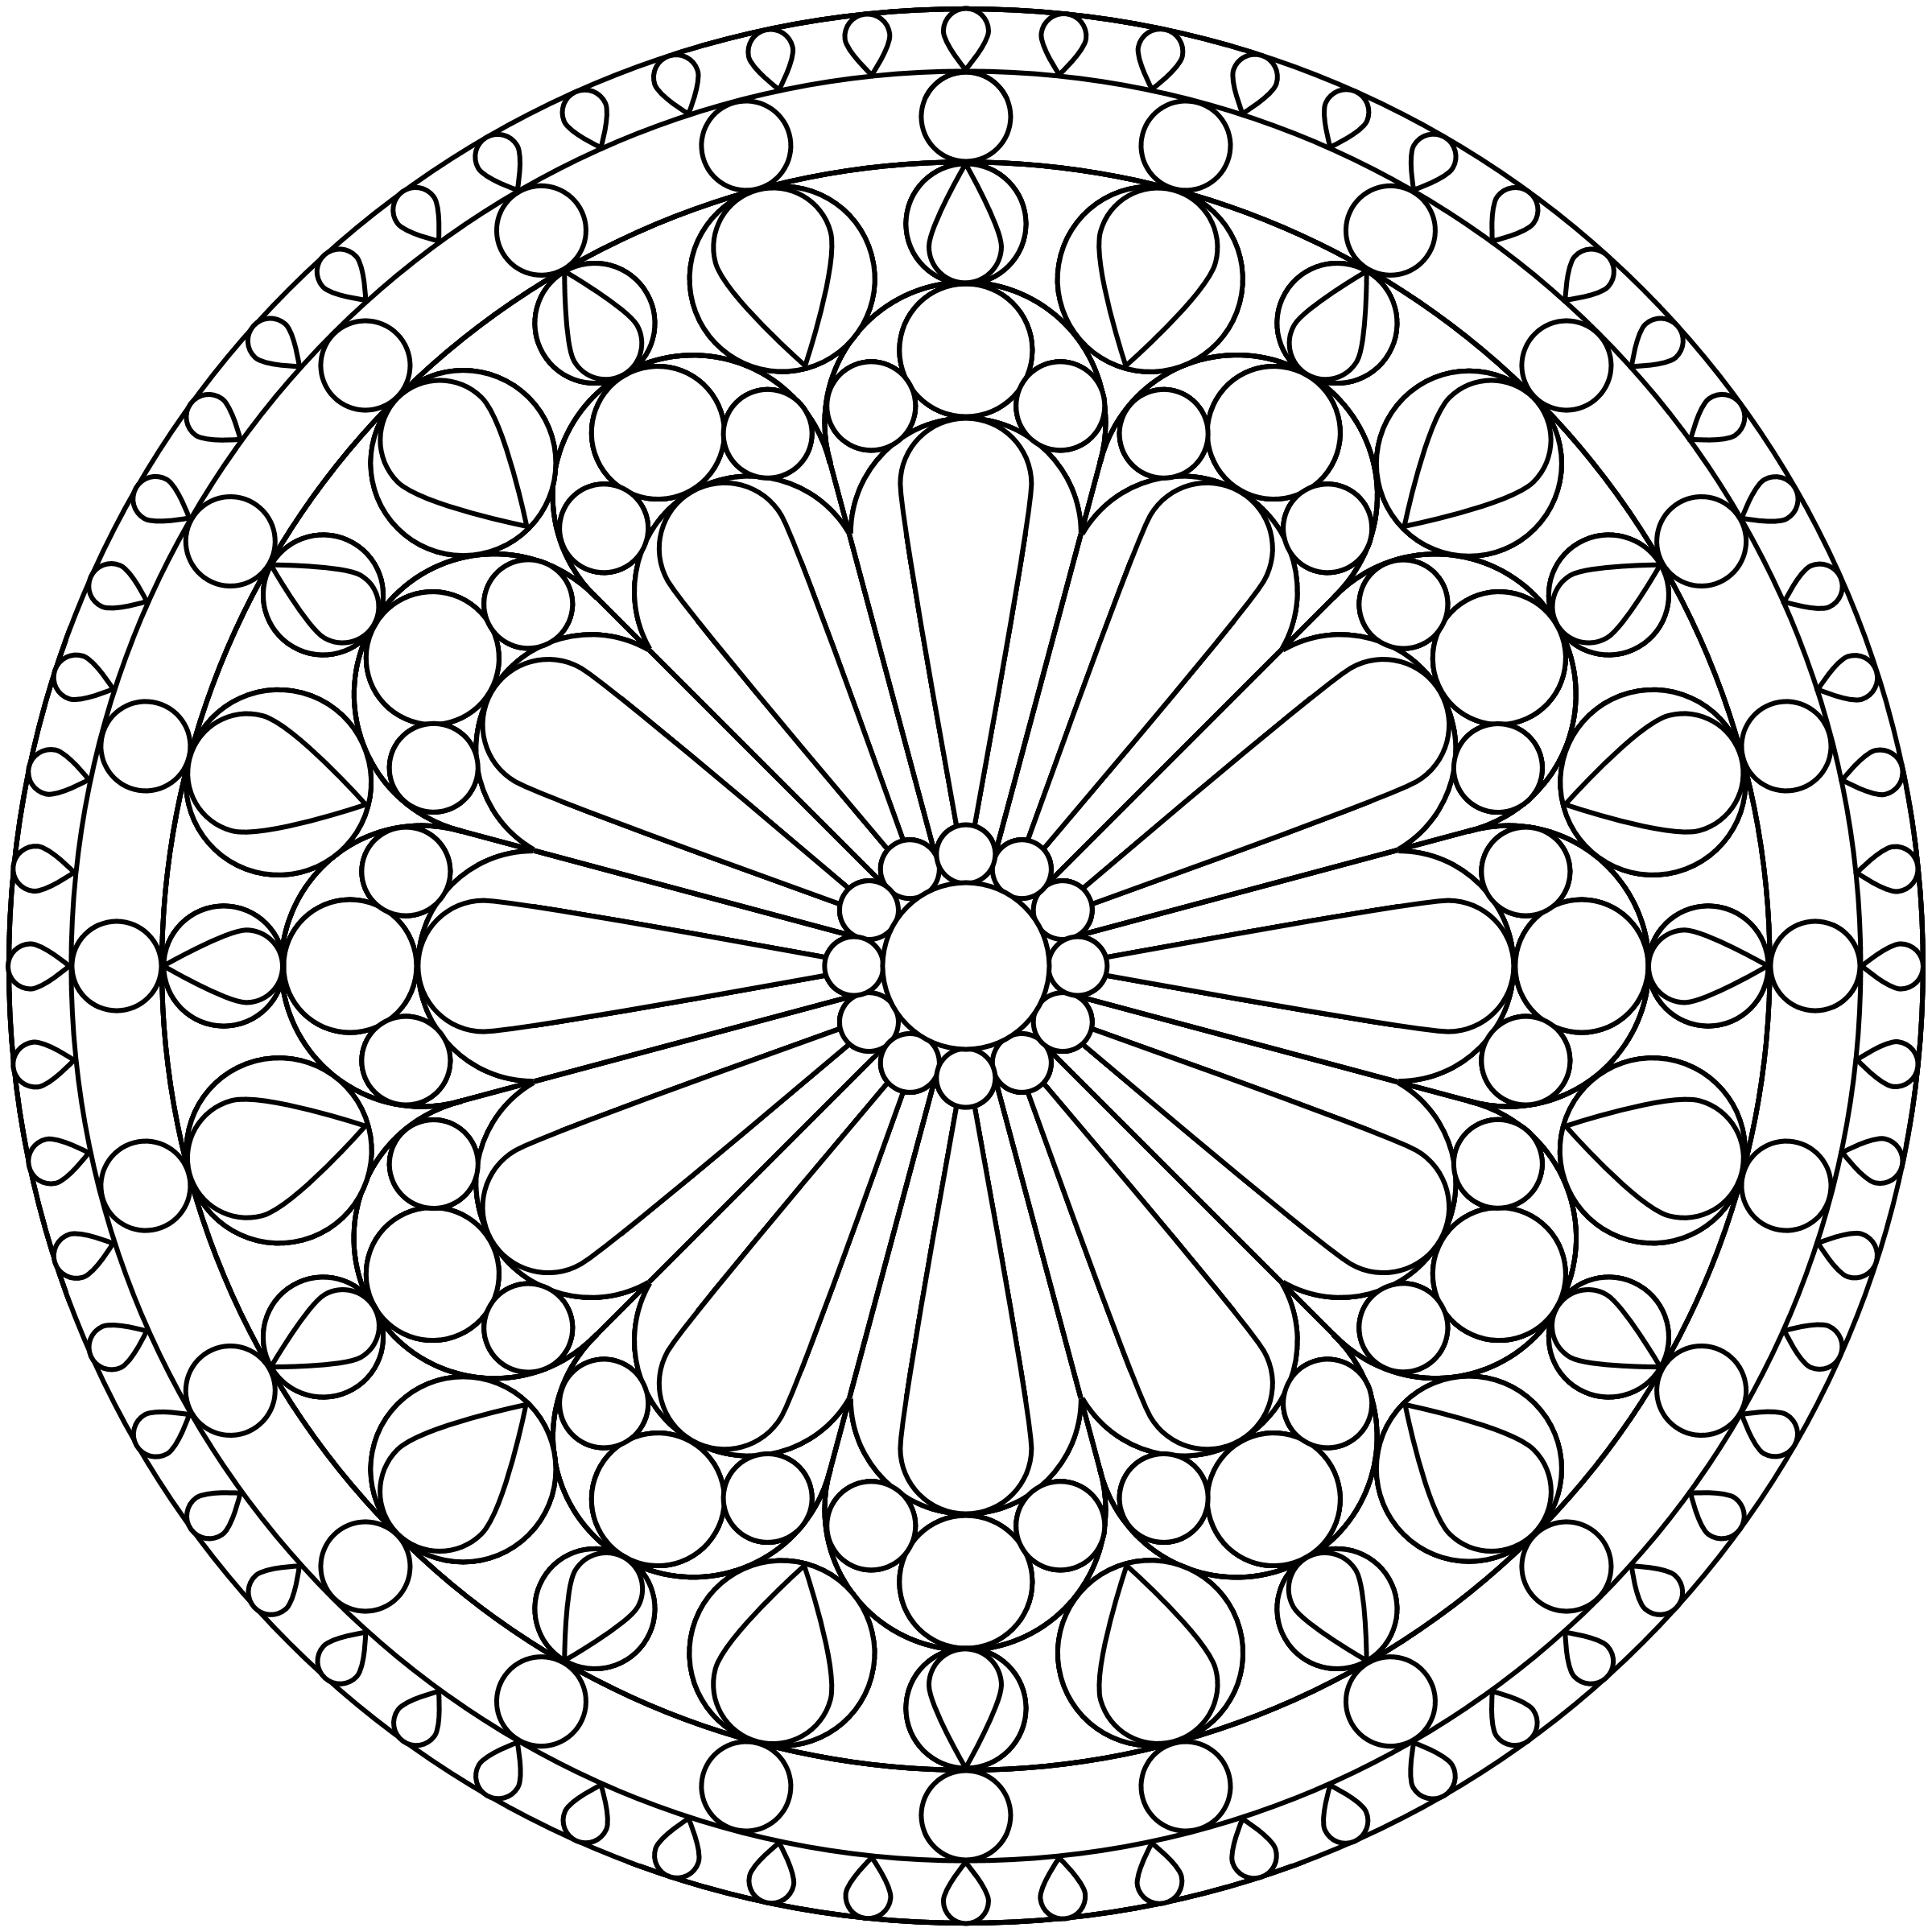 mandala colouring pages for kids mandala for kids with beautiful horse easy mandalas for mandala pages for colouring kids